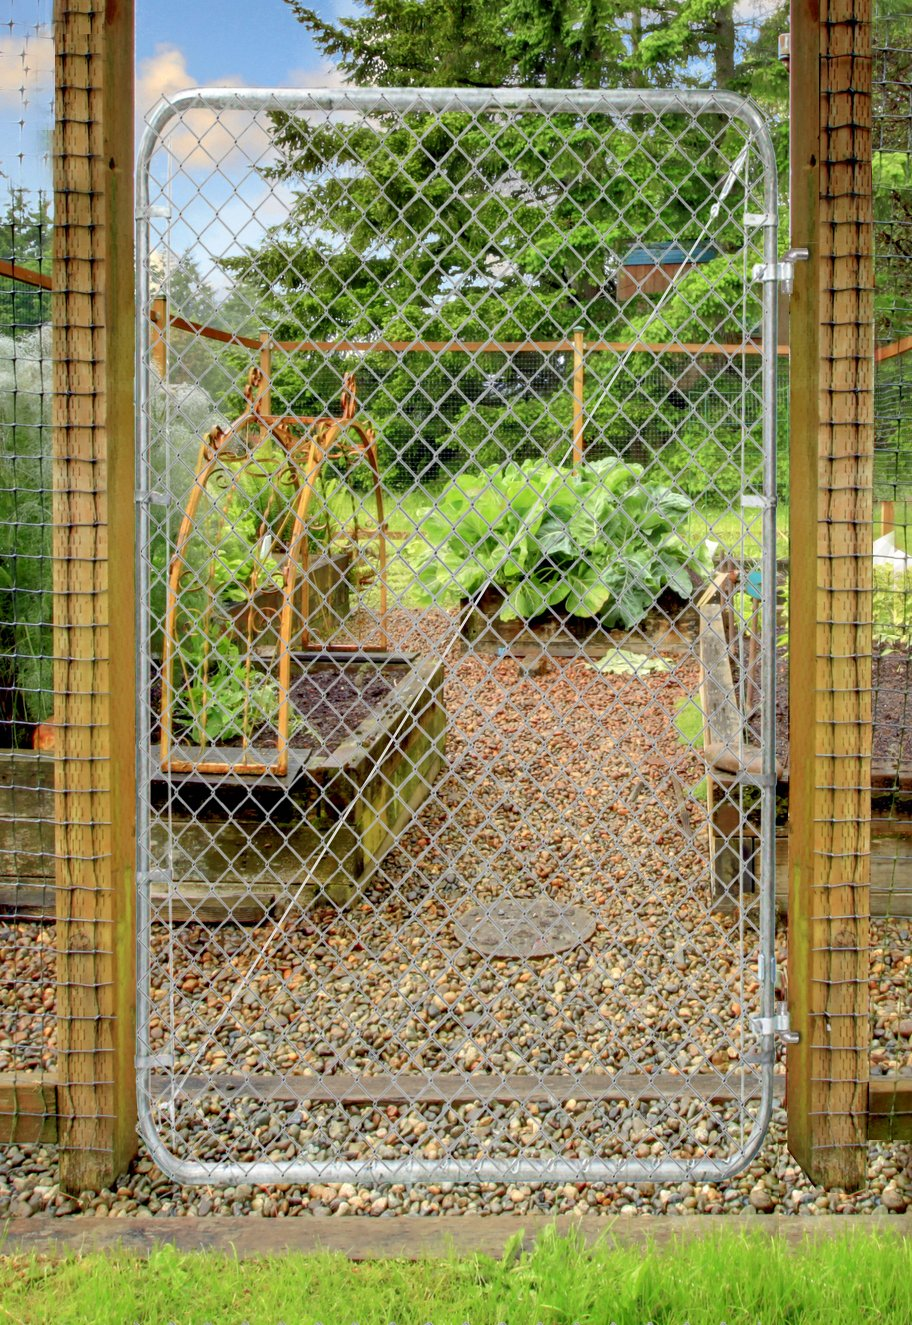 Fit-Right Chain Link Fence Walk-through Gate Kit (24''-72'' wide x 4' high) by Adjust-A-Gate (Image #4)